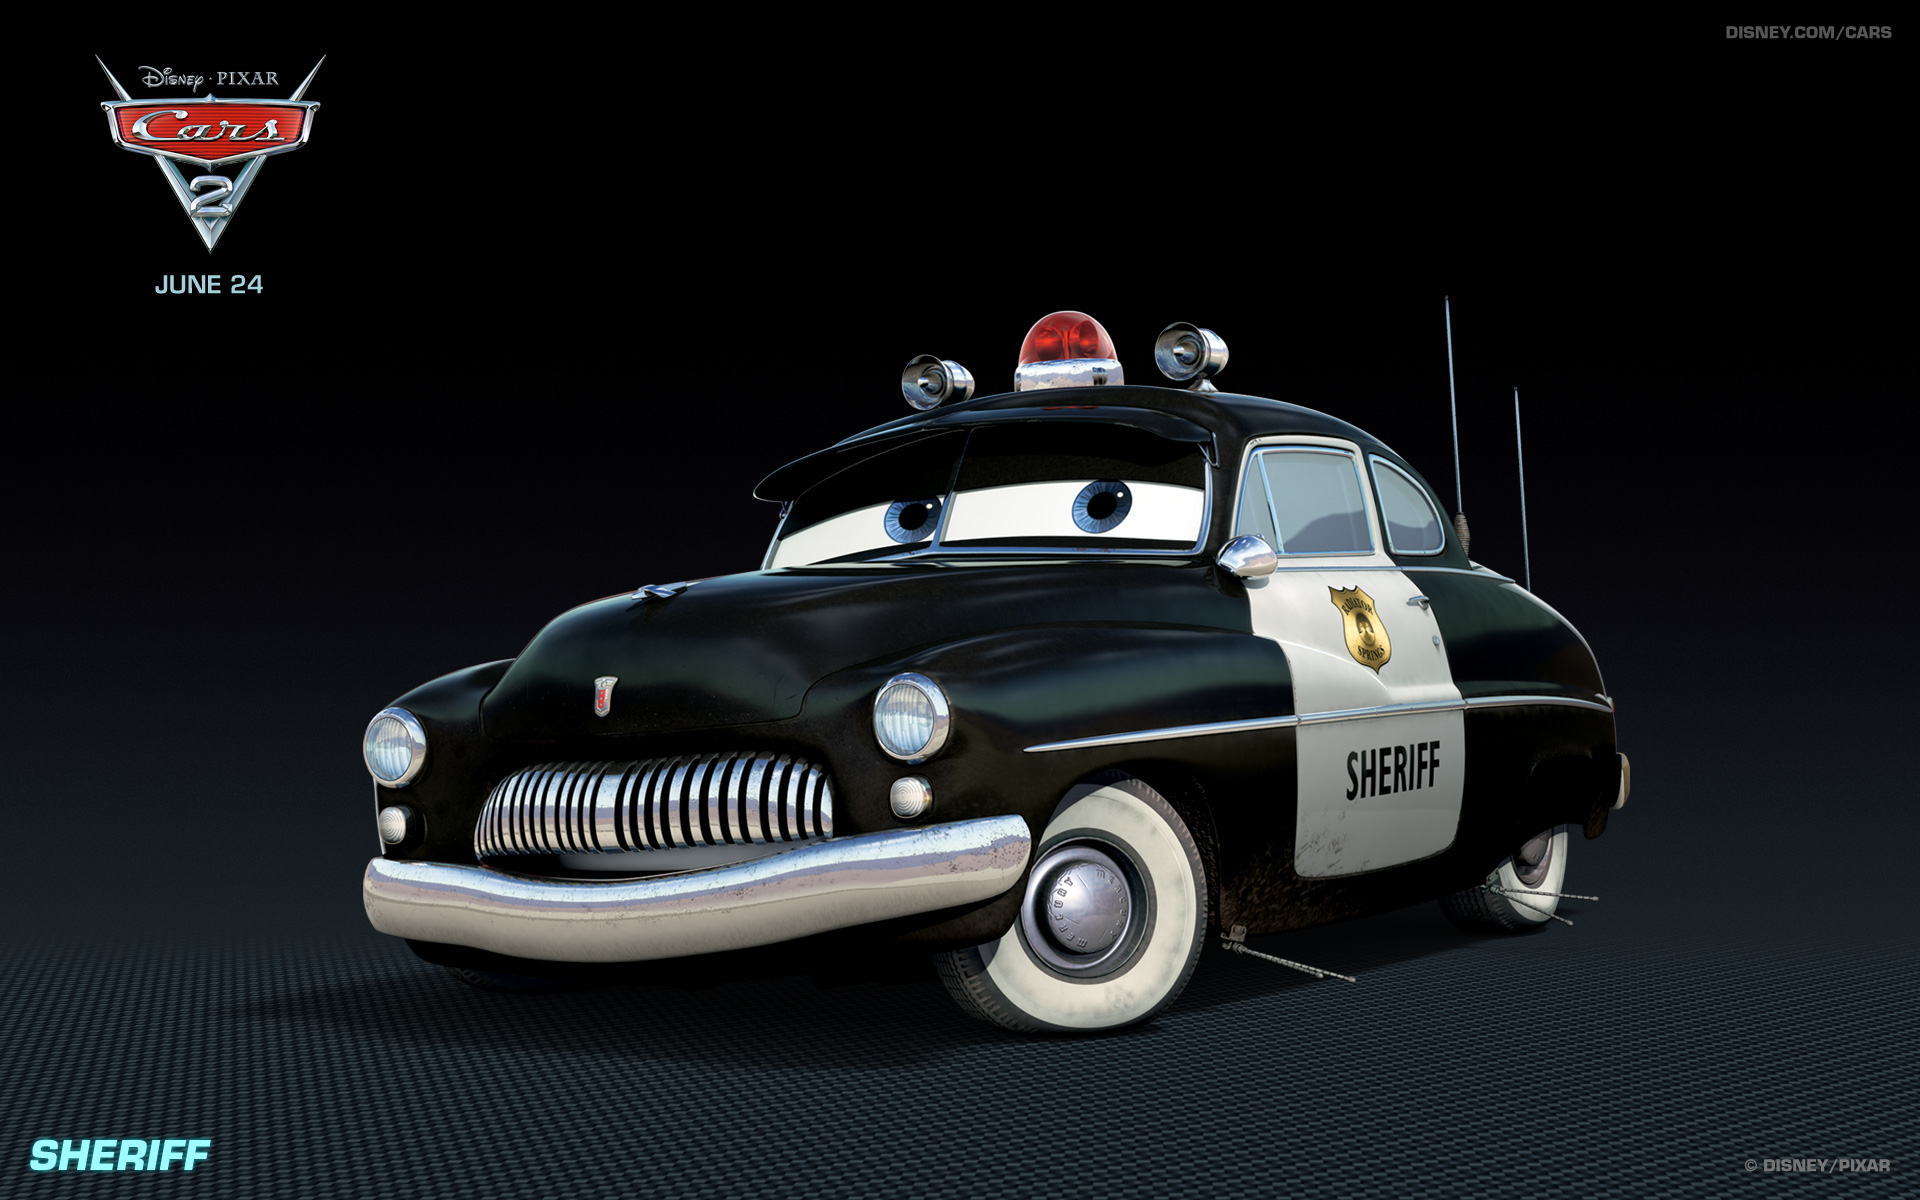 Sheriff From Disneys Cars Movie Wallpaper Click Picture For High